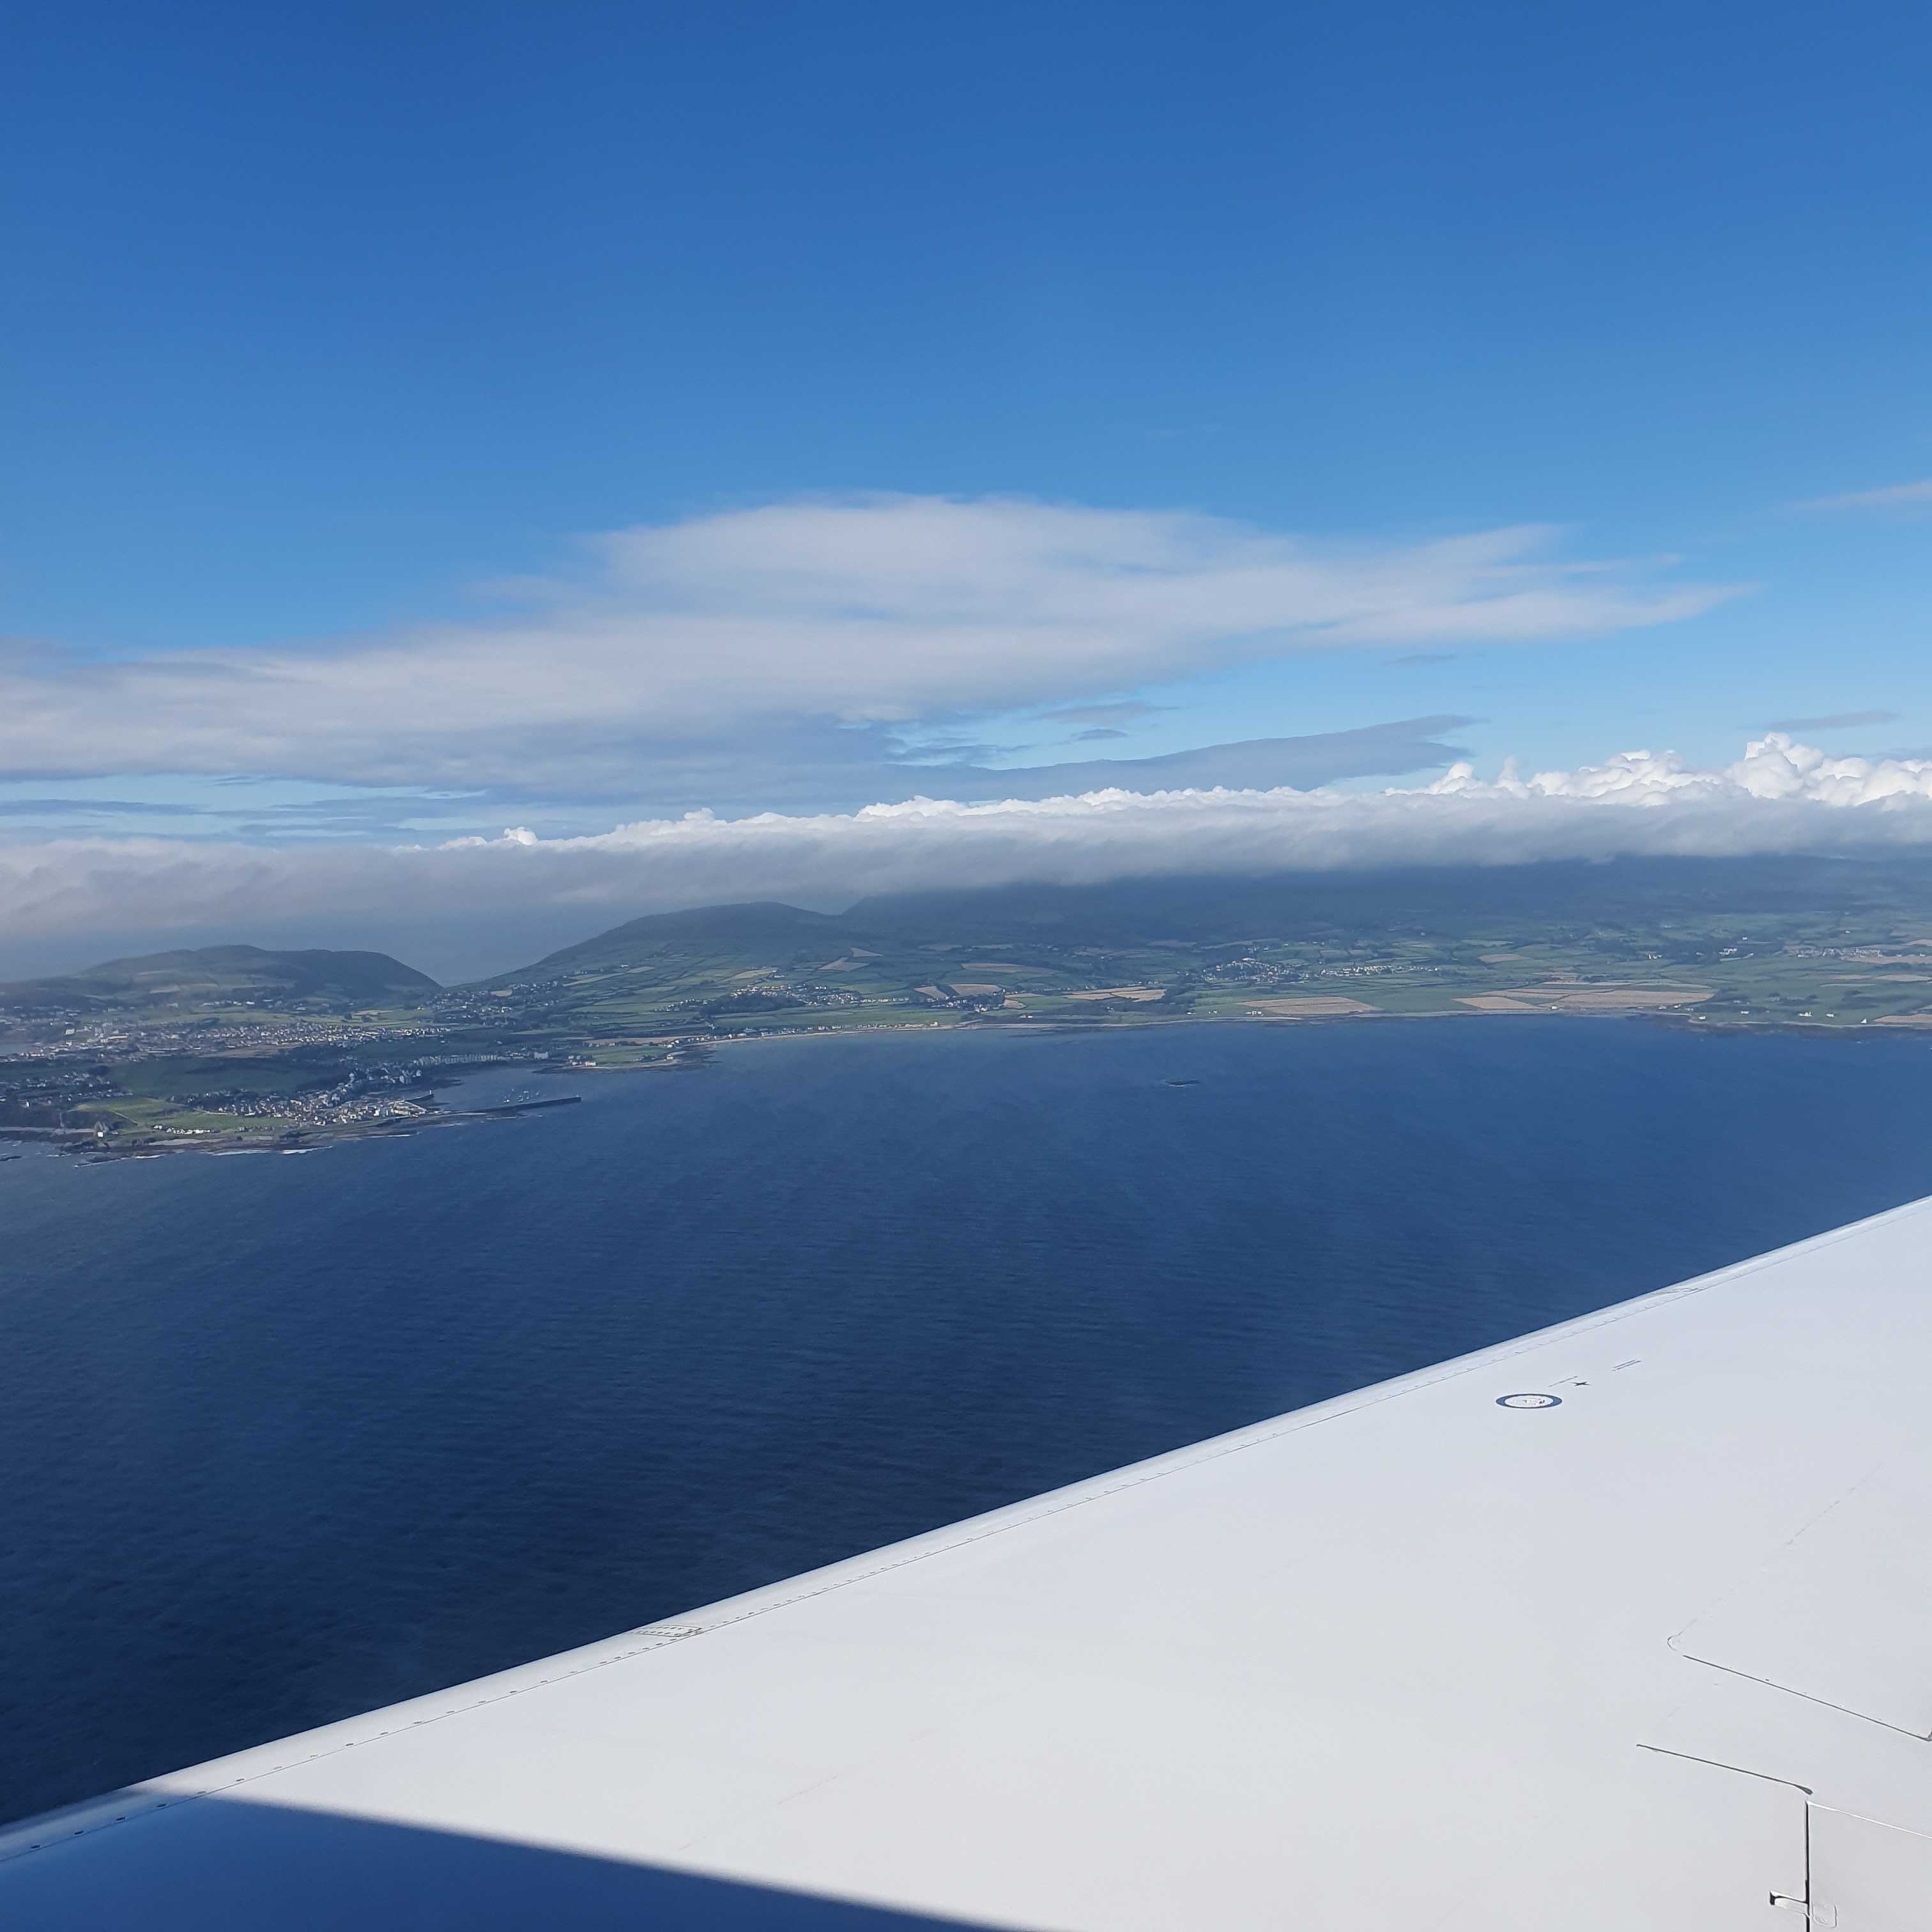 Isle of Man view from plane Synergy